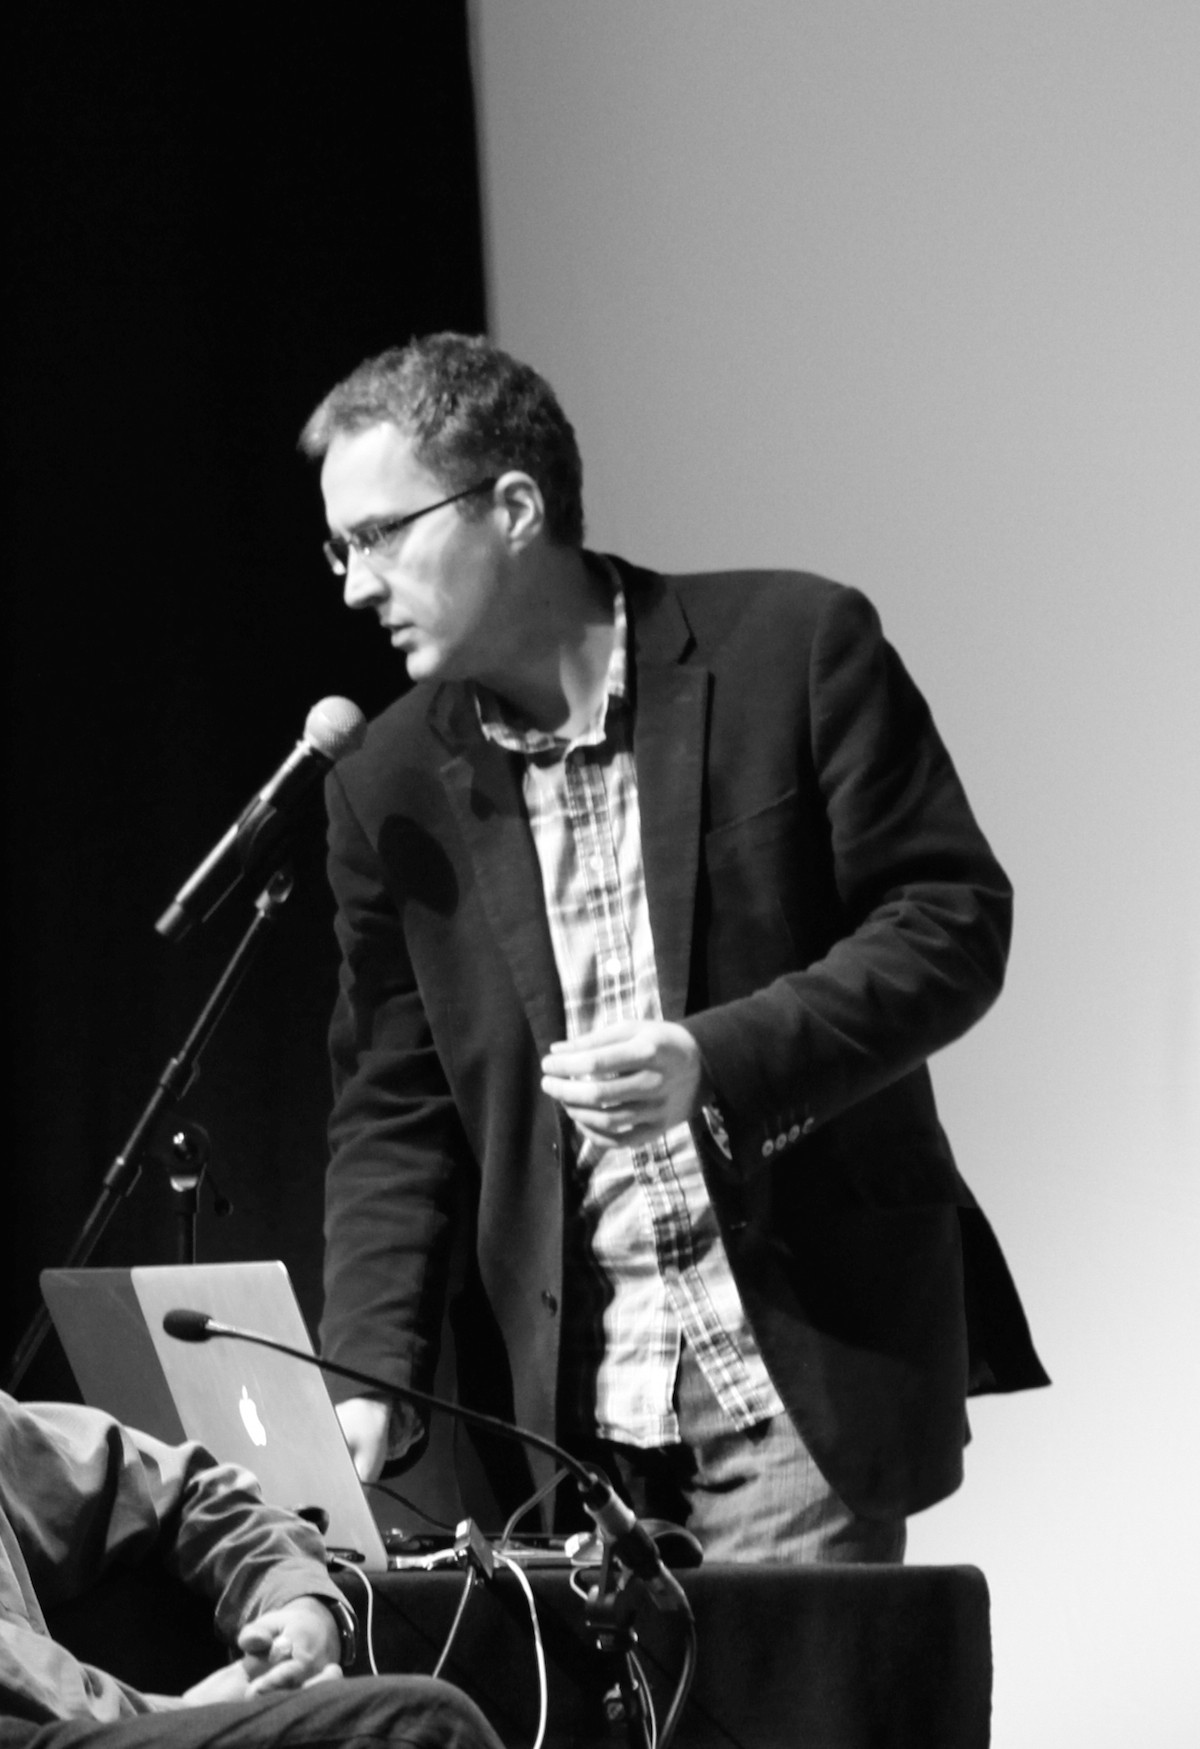 James Hannigan, Game Music Connect 2014